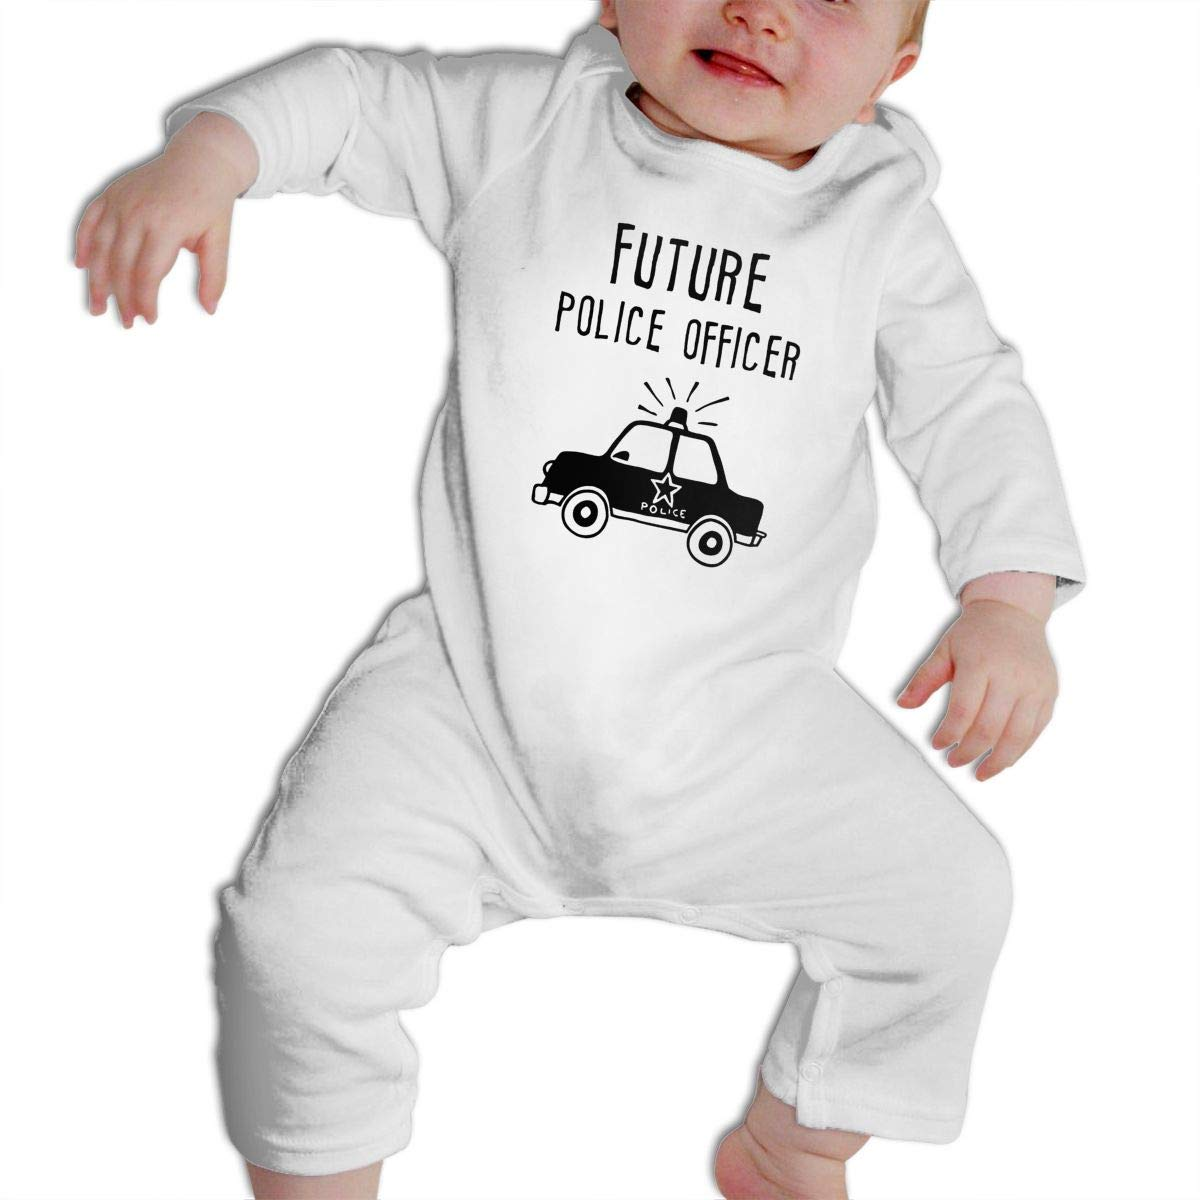 Cami Future Police Officer Baby Boys Girls Long Sleeve Onesies Infant Bodysuit Baby For 6-24months